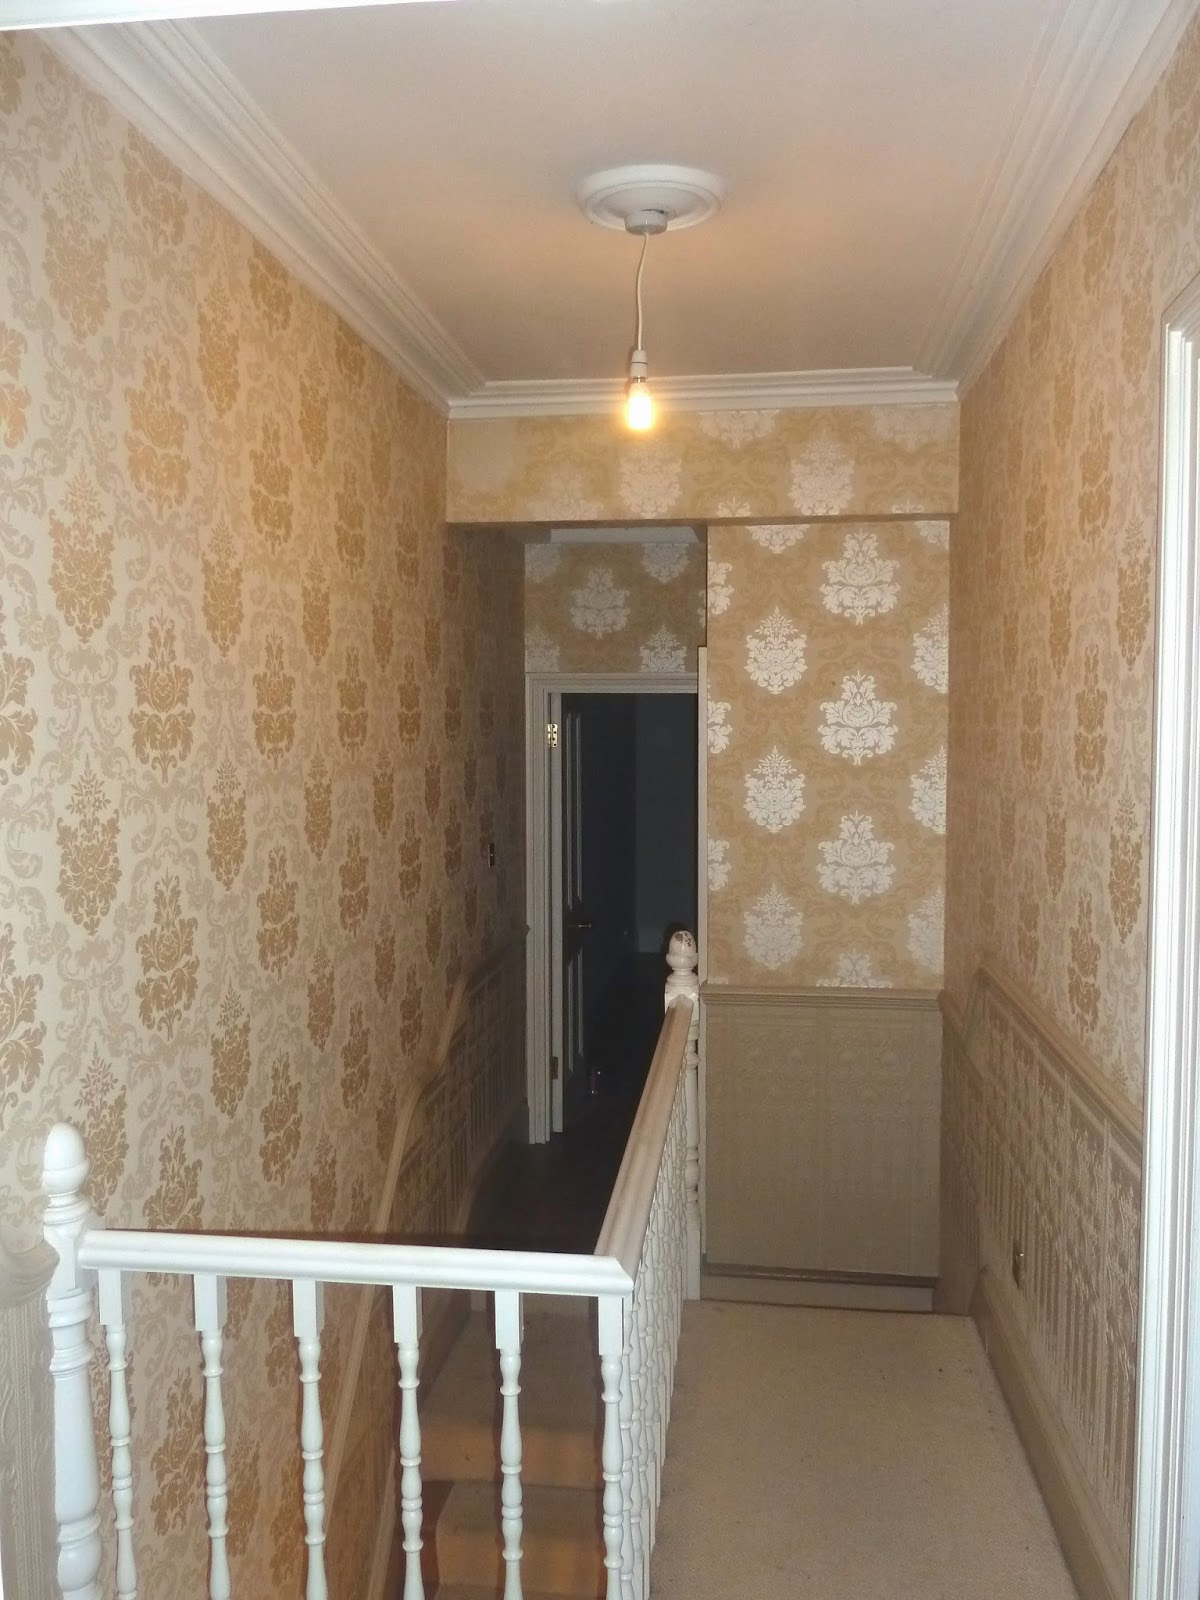 Download Wallpaper For Hall And Stairs Ideas Gallery